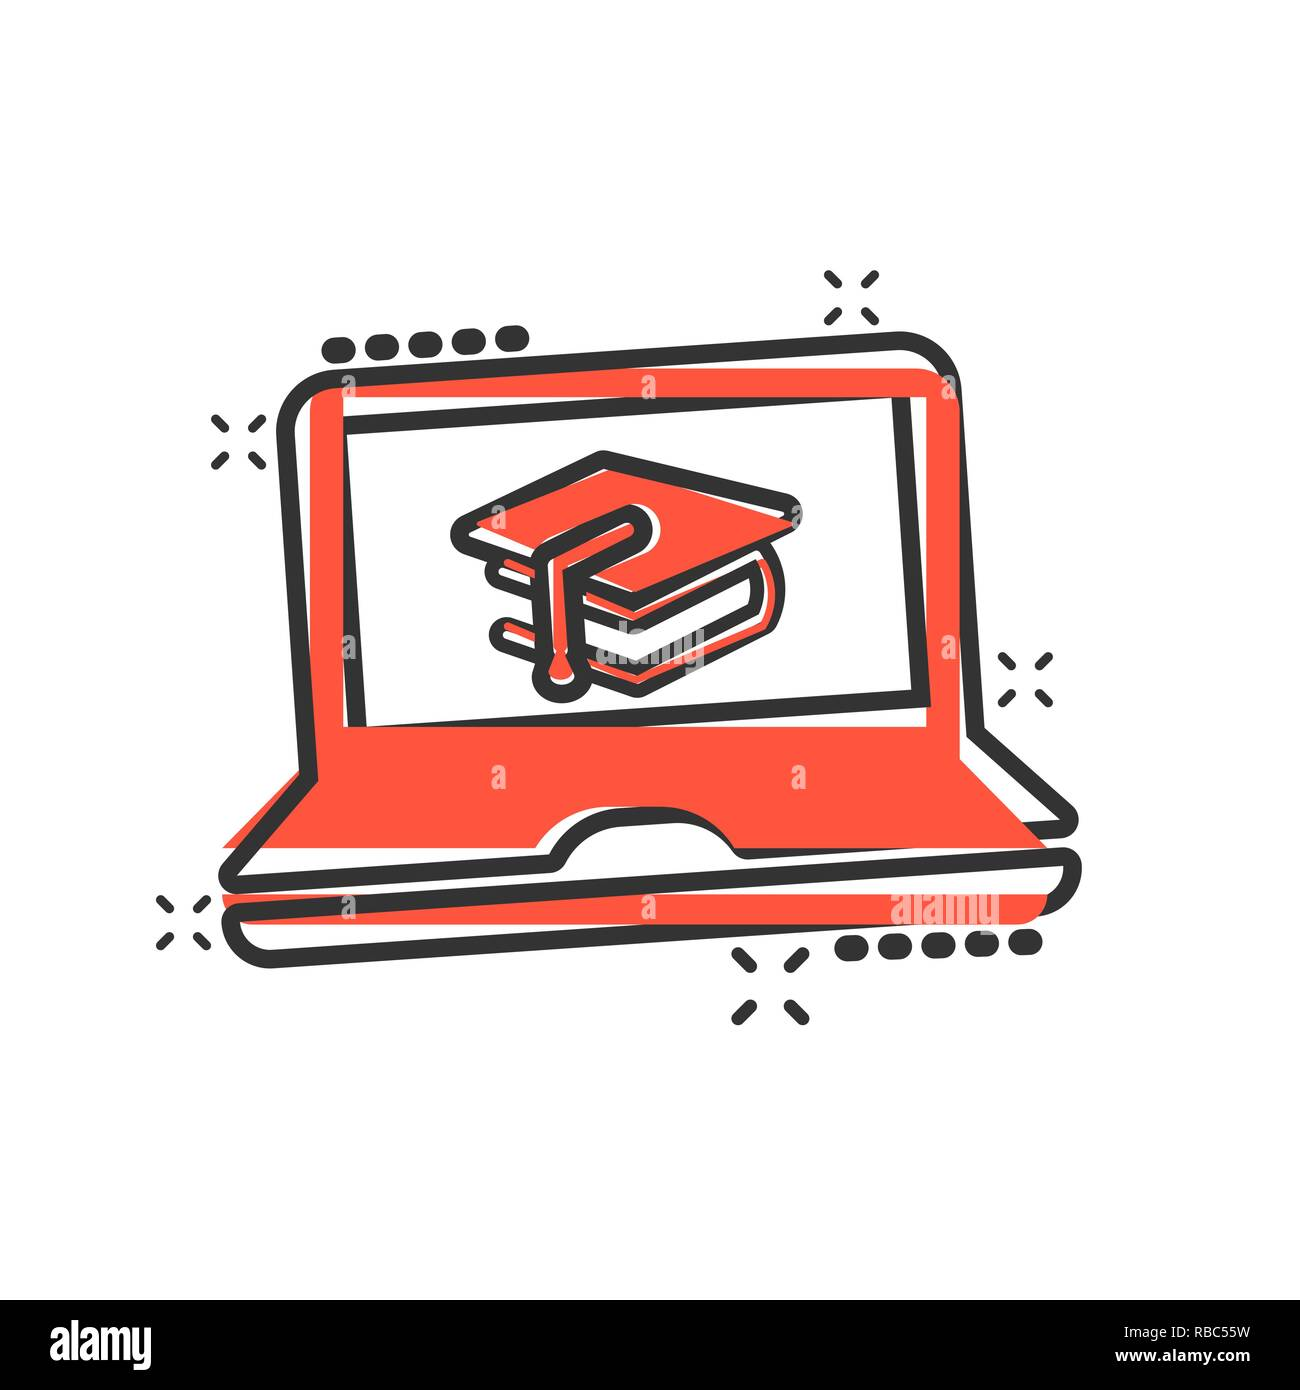 Elearning education icon in comic style study vector cartoon illustration pictogram laptop computer online training business concept splash effect